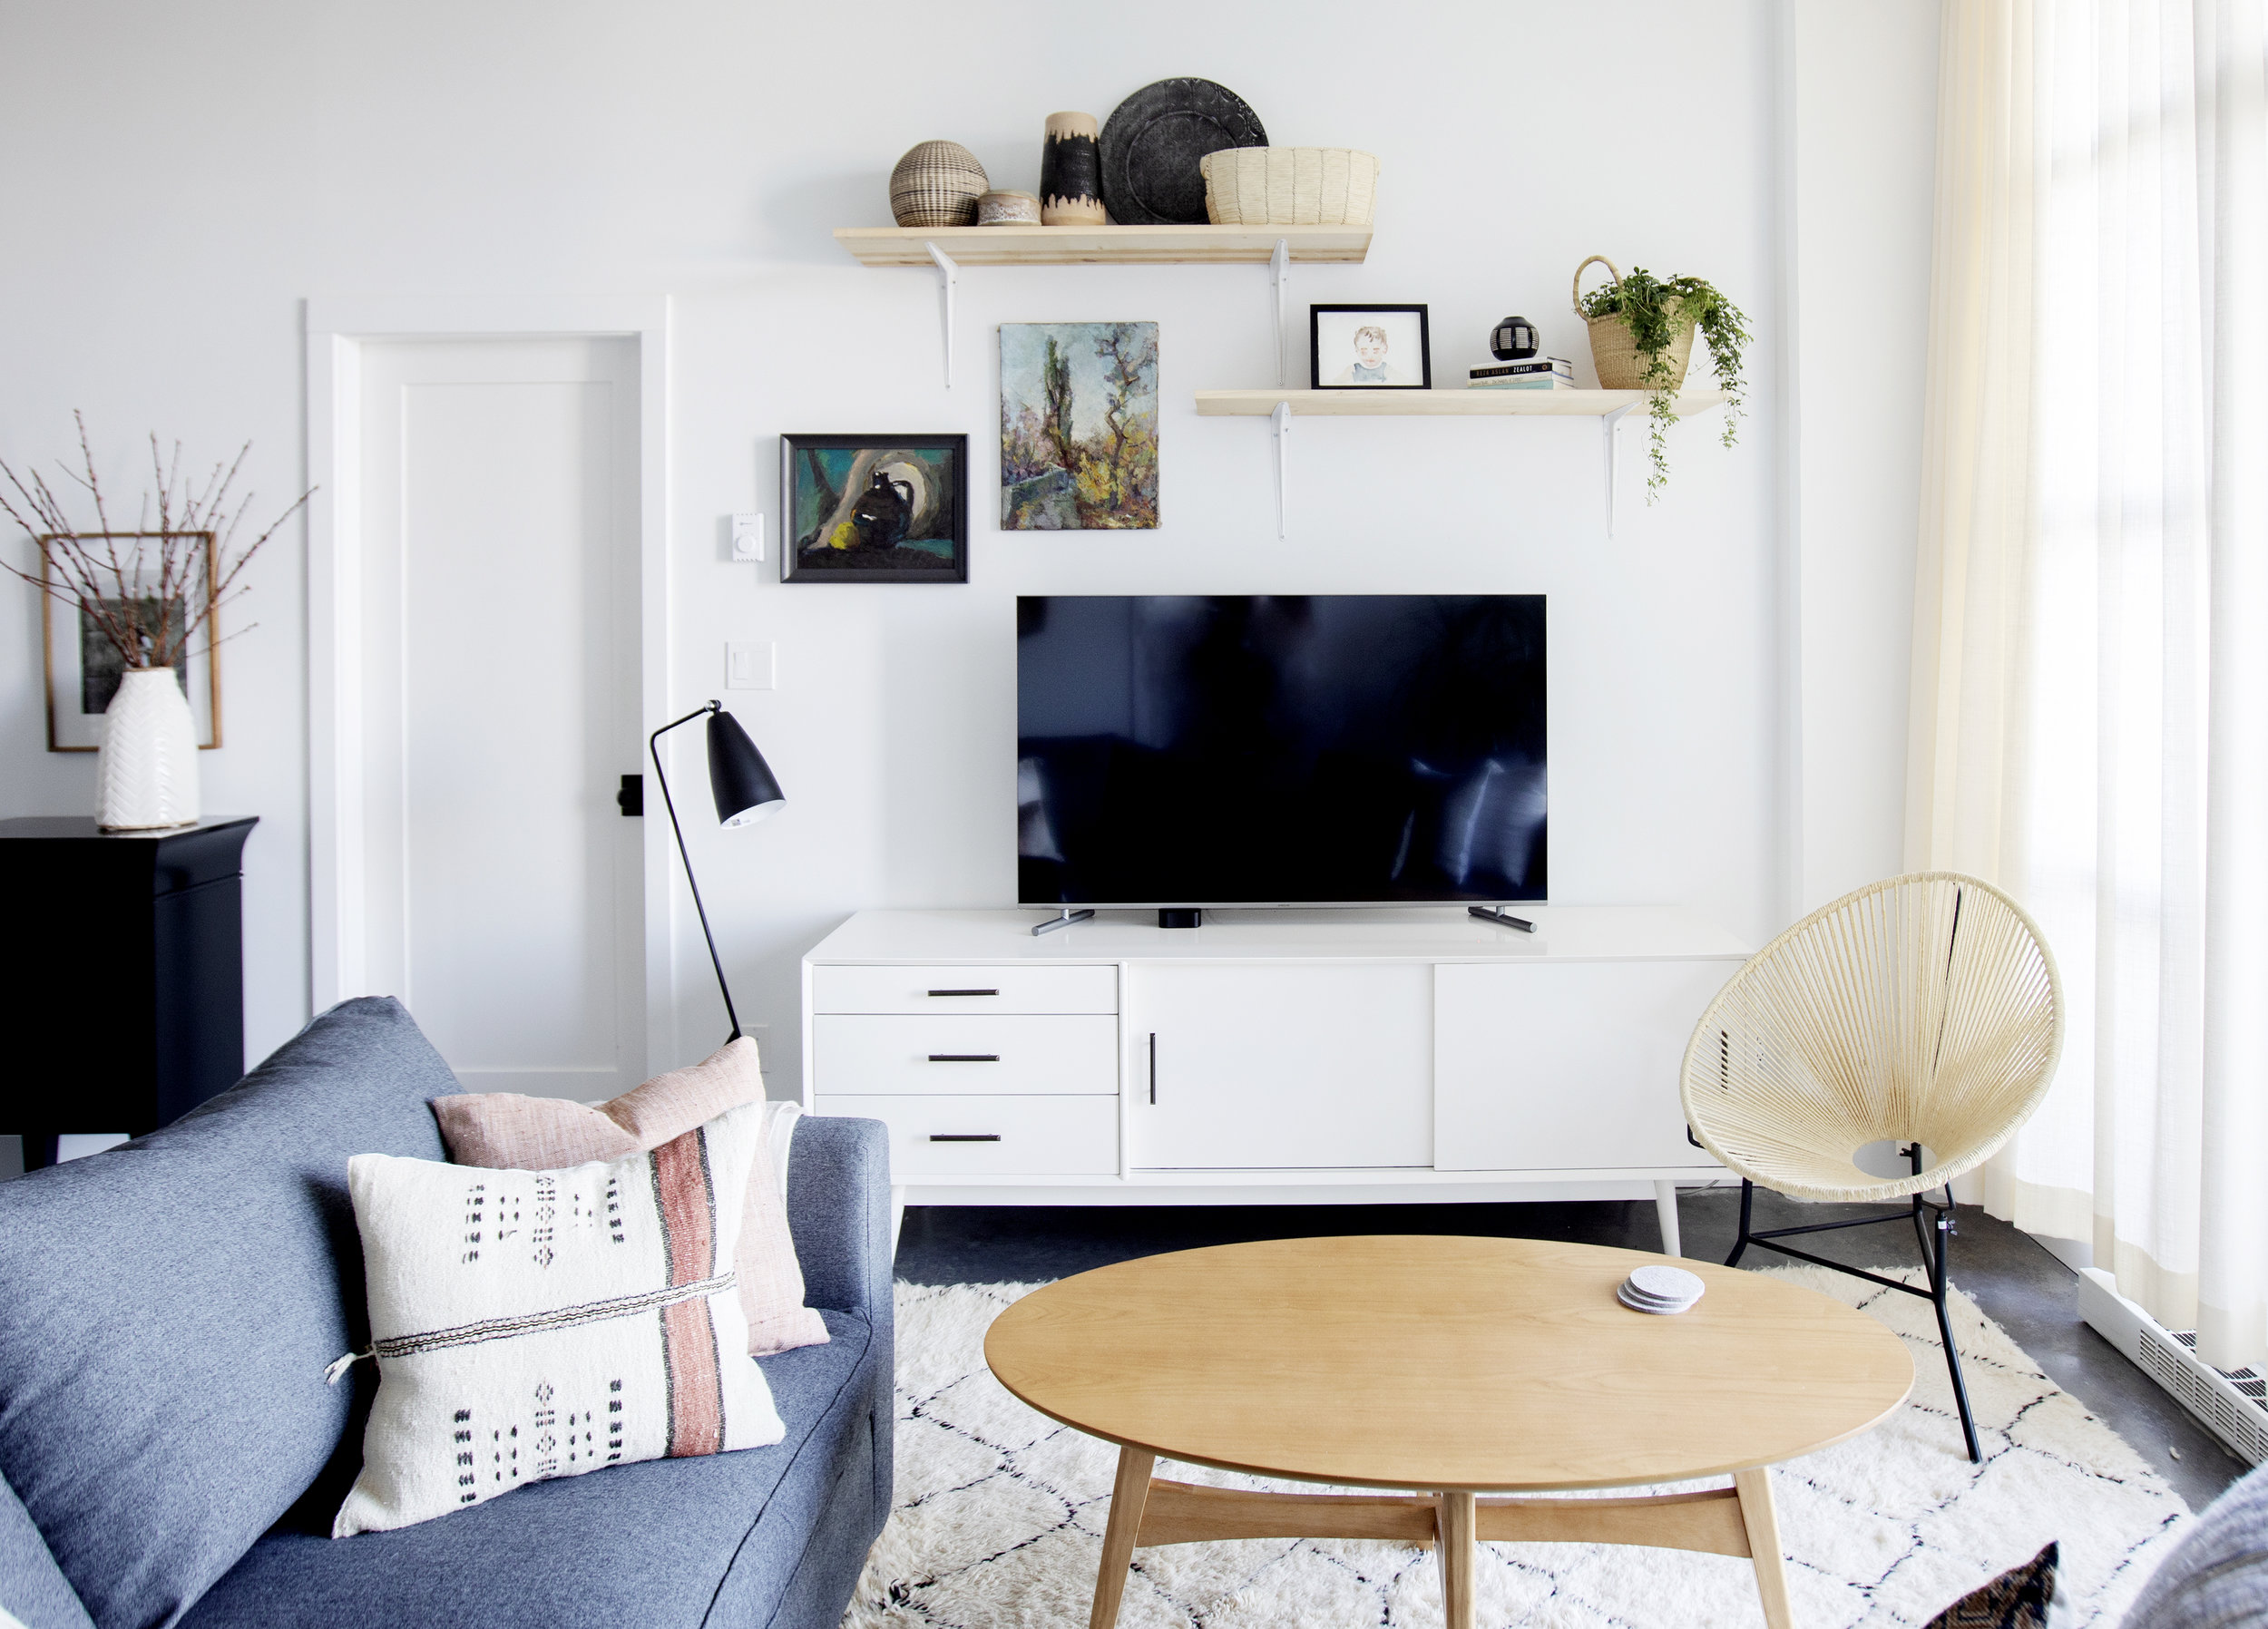 The living room of Prince Edward Street is bright and cozy, with tv on a white entertainment system, and shelving located above.